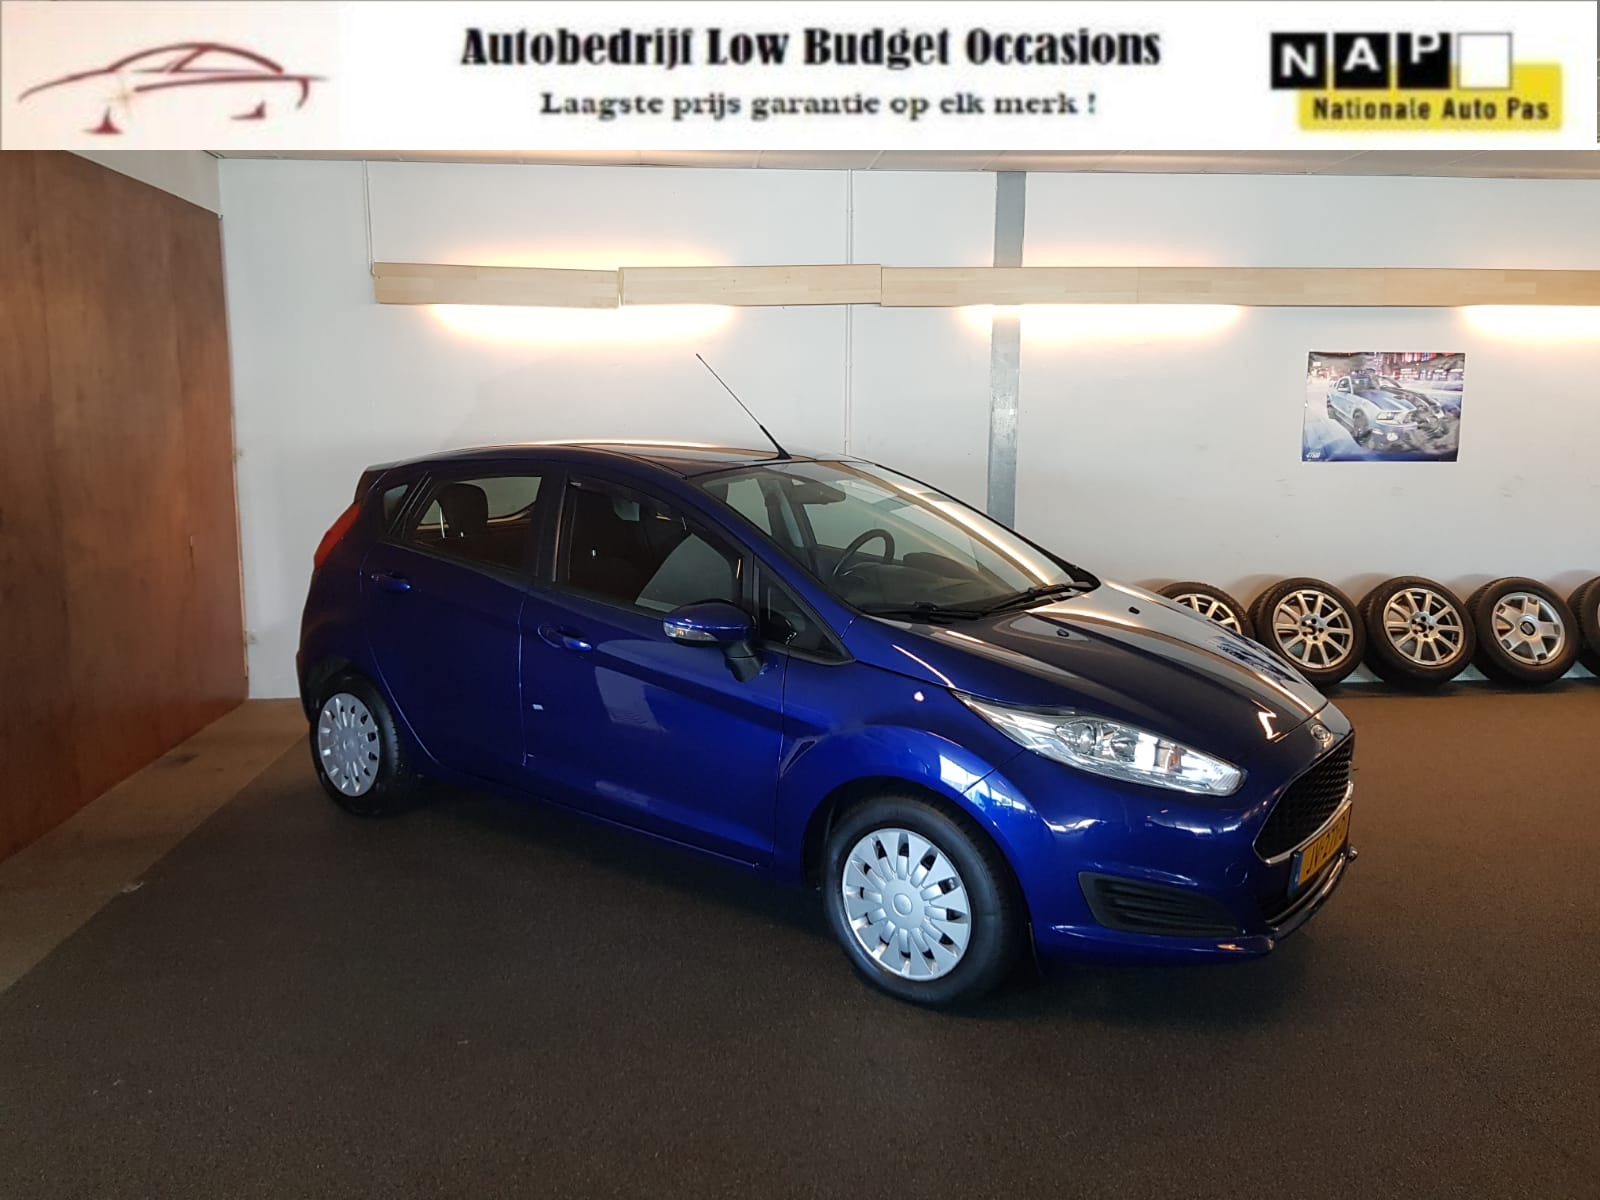 Ford Fiesta occasion - Low Budget Occasions